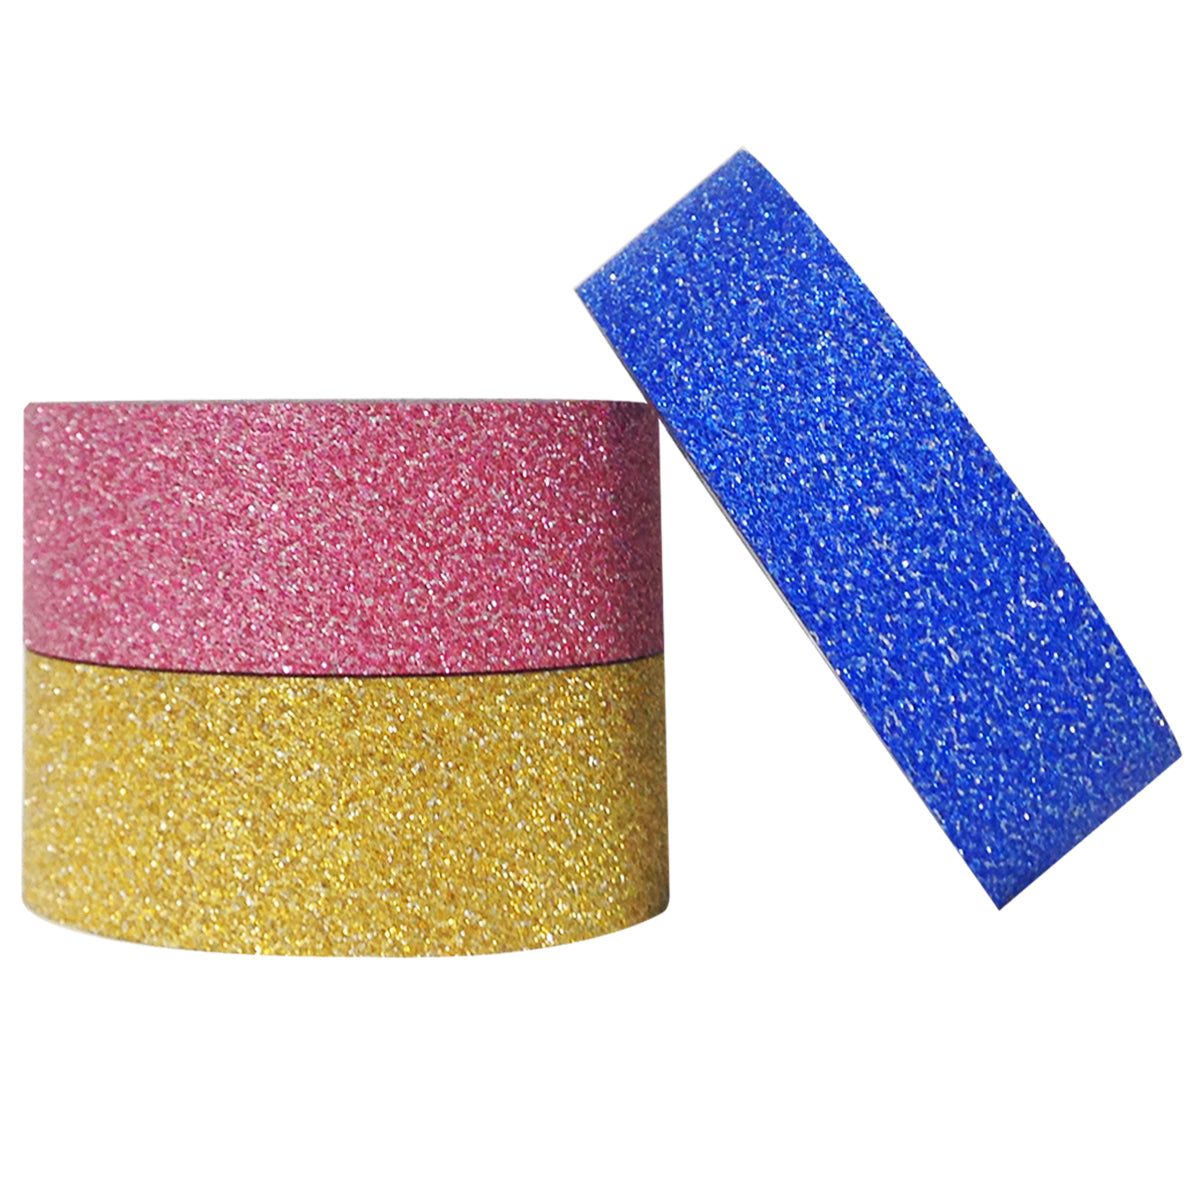 Wrapables Glamorous Glitter Japanese Washi Masking Tape (Set of 3)